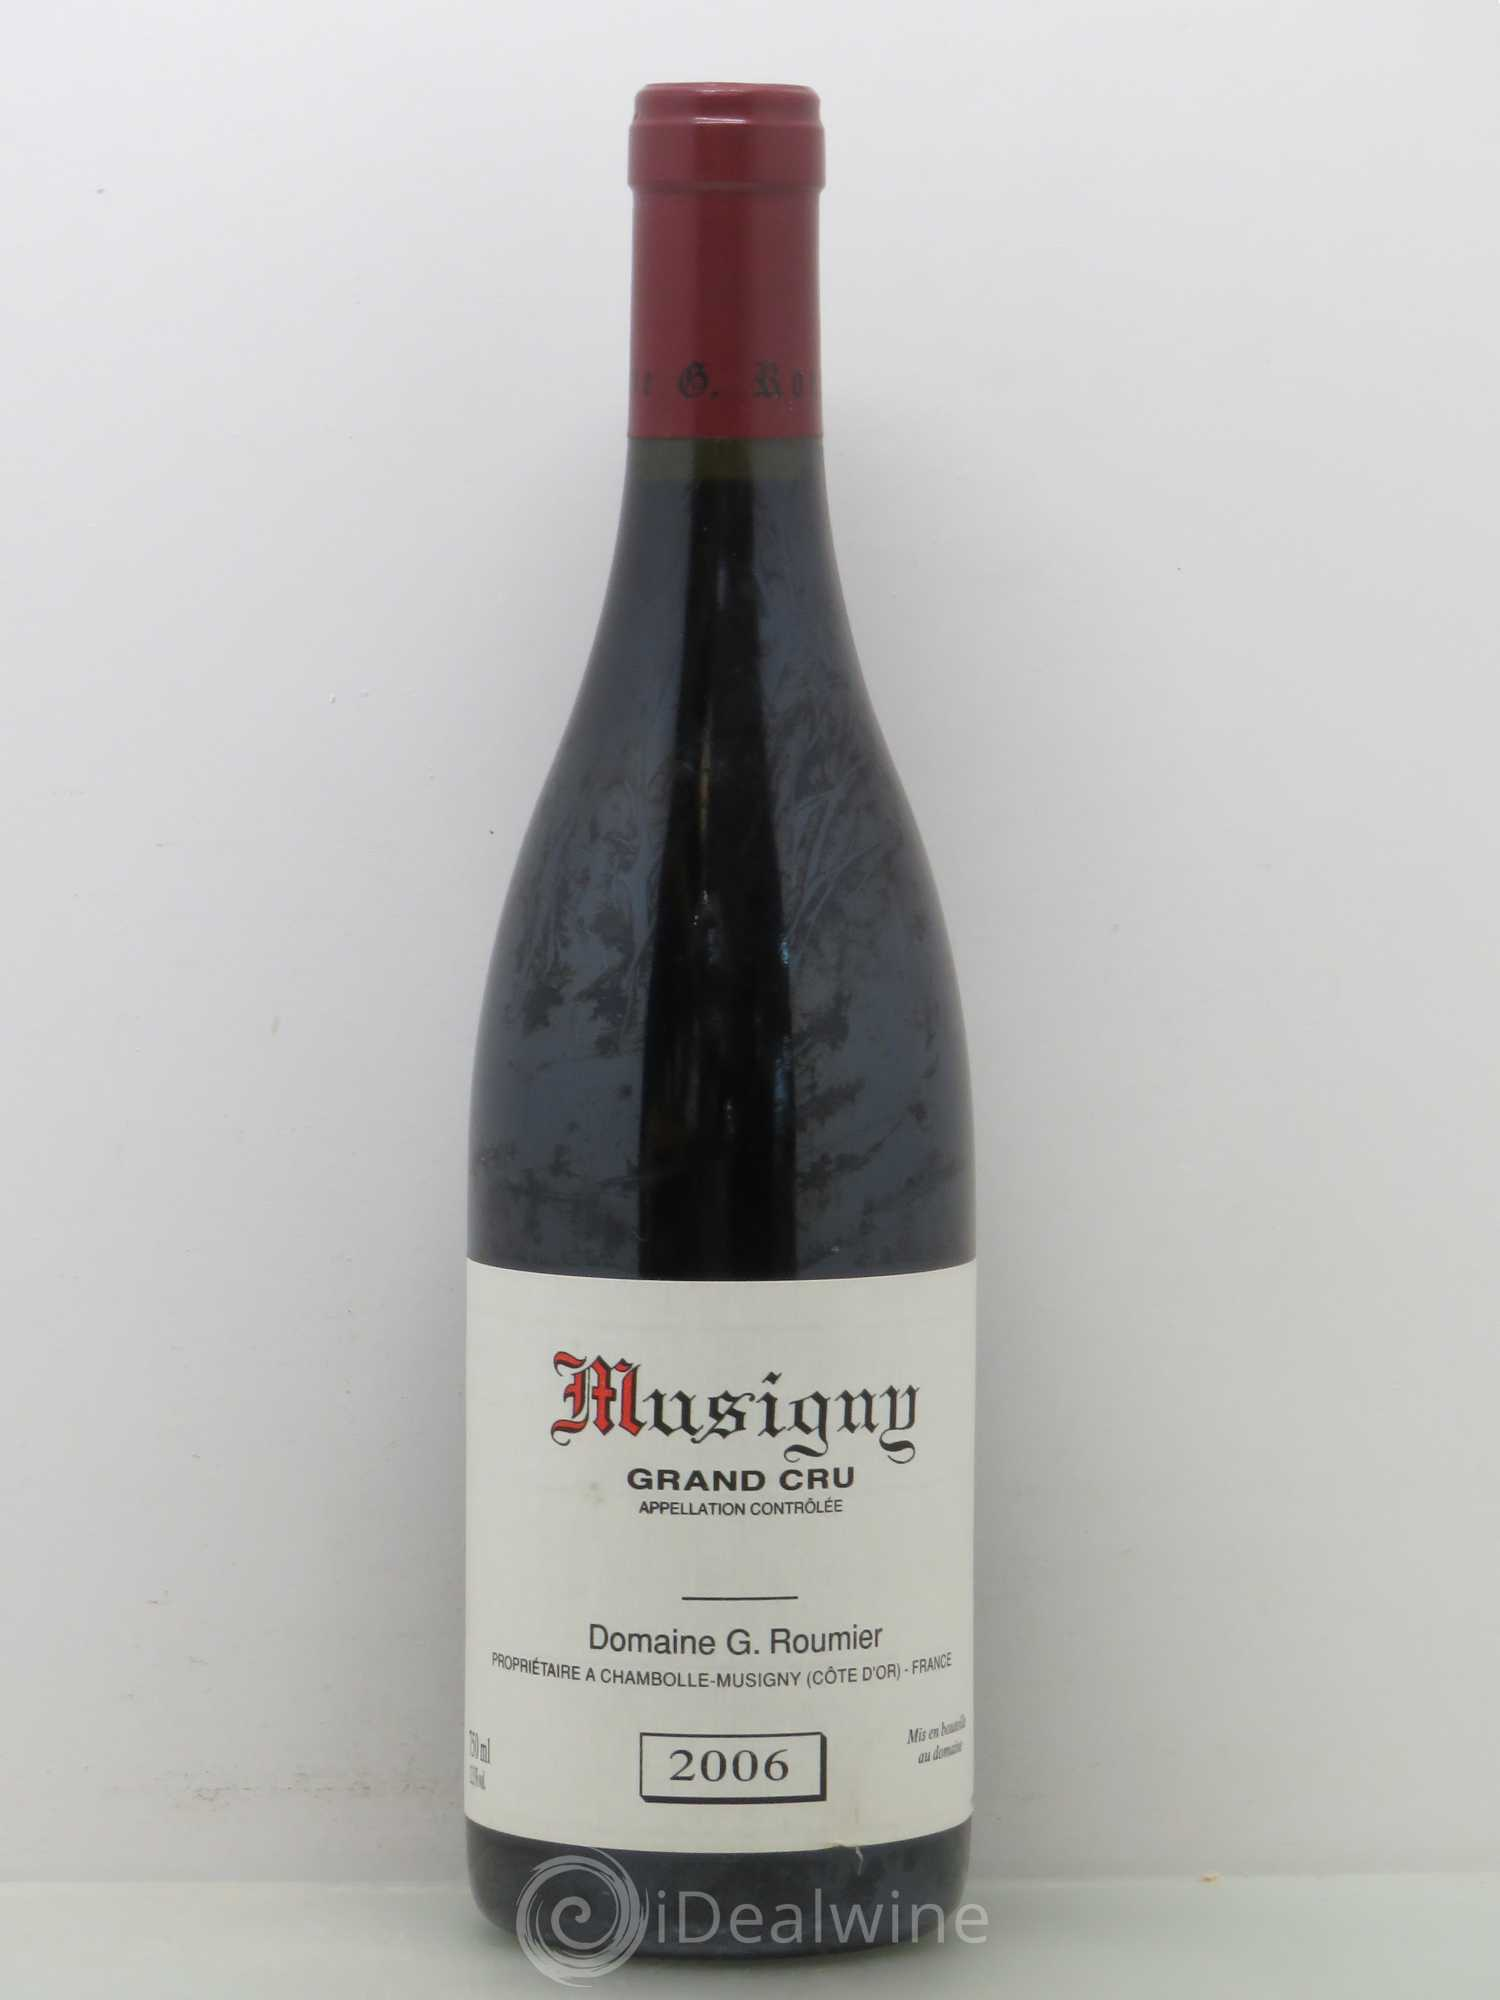 Musigny Grand Cru Georges Roumier (Domaine)  2006 - Lot of 1 Bottle